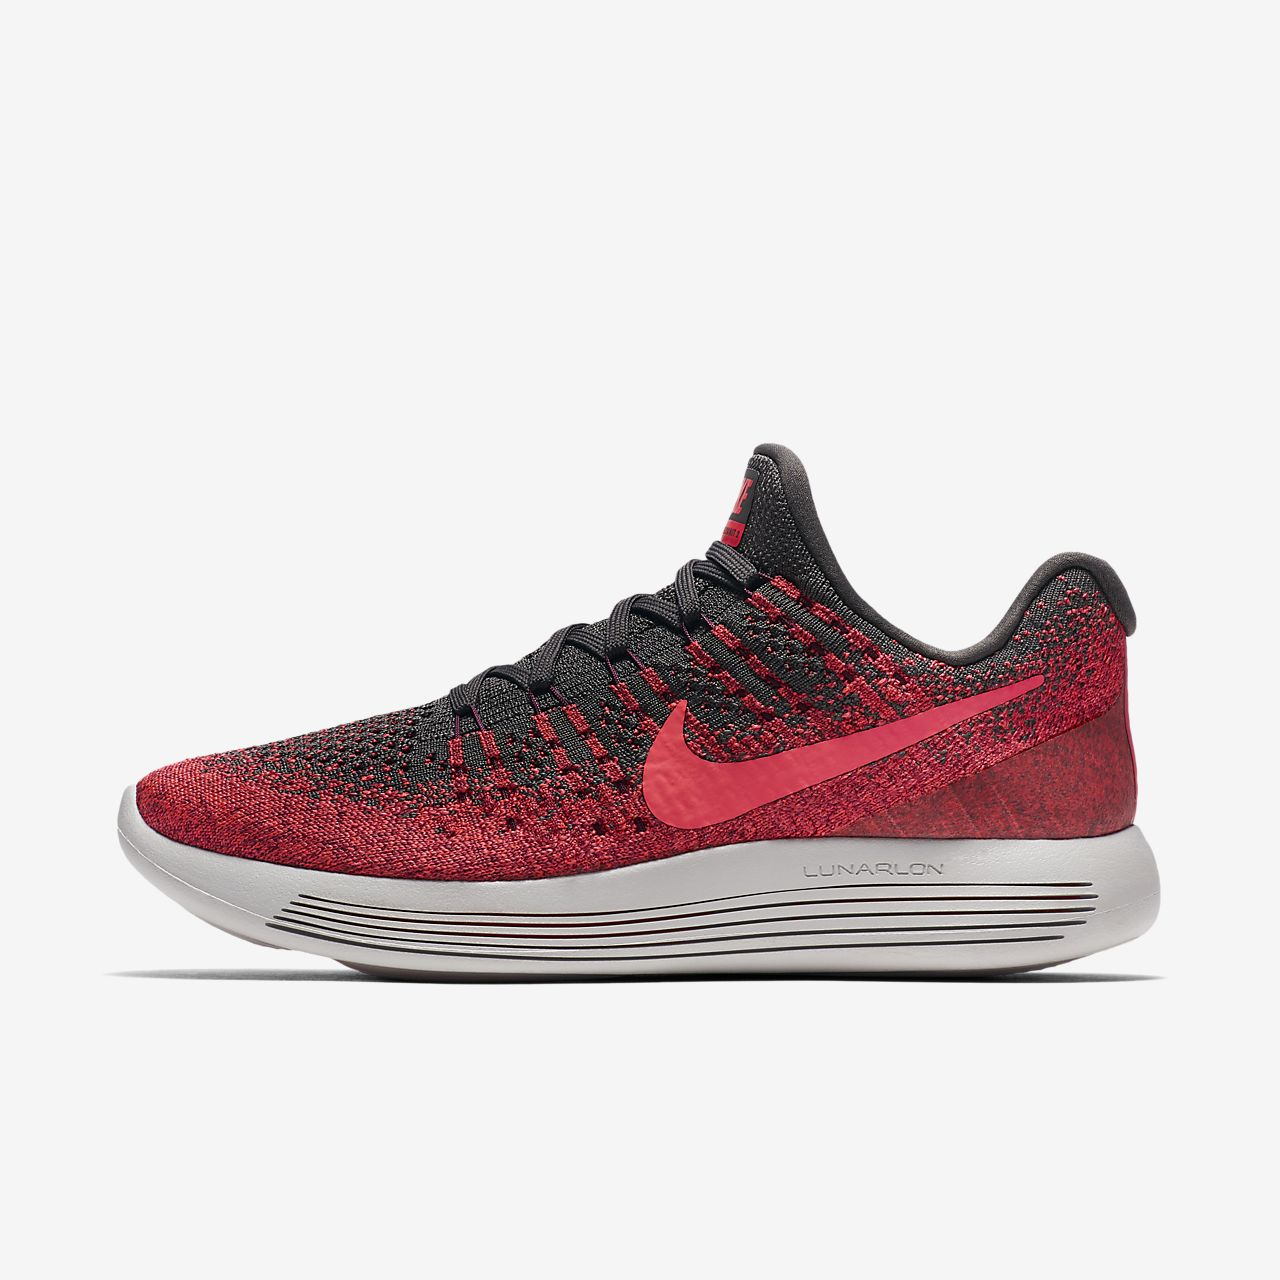 Nike LunarEpic Low Flyknit 2 Womens Running Shoe